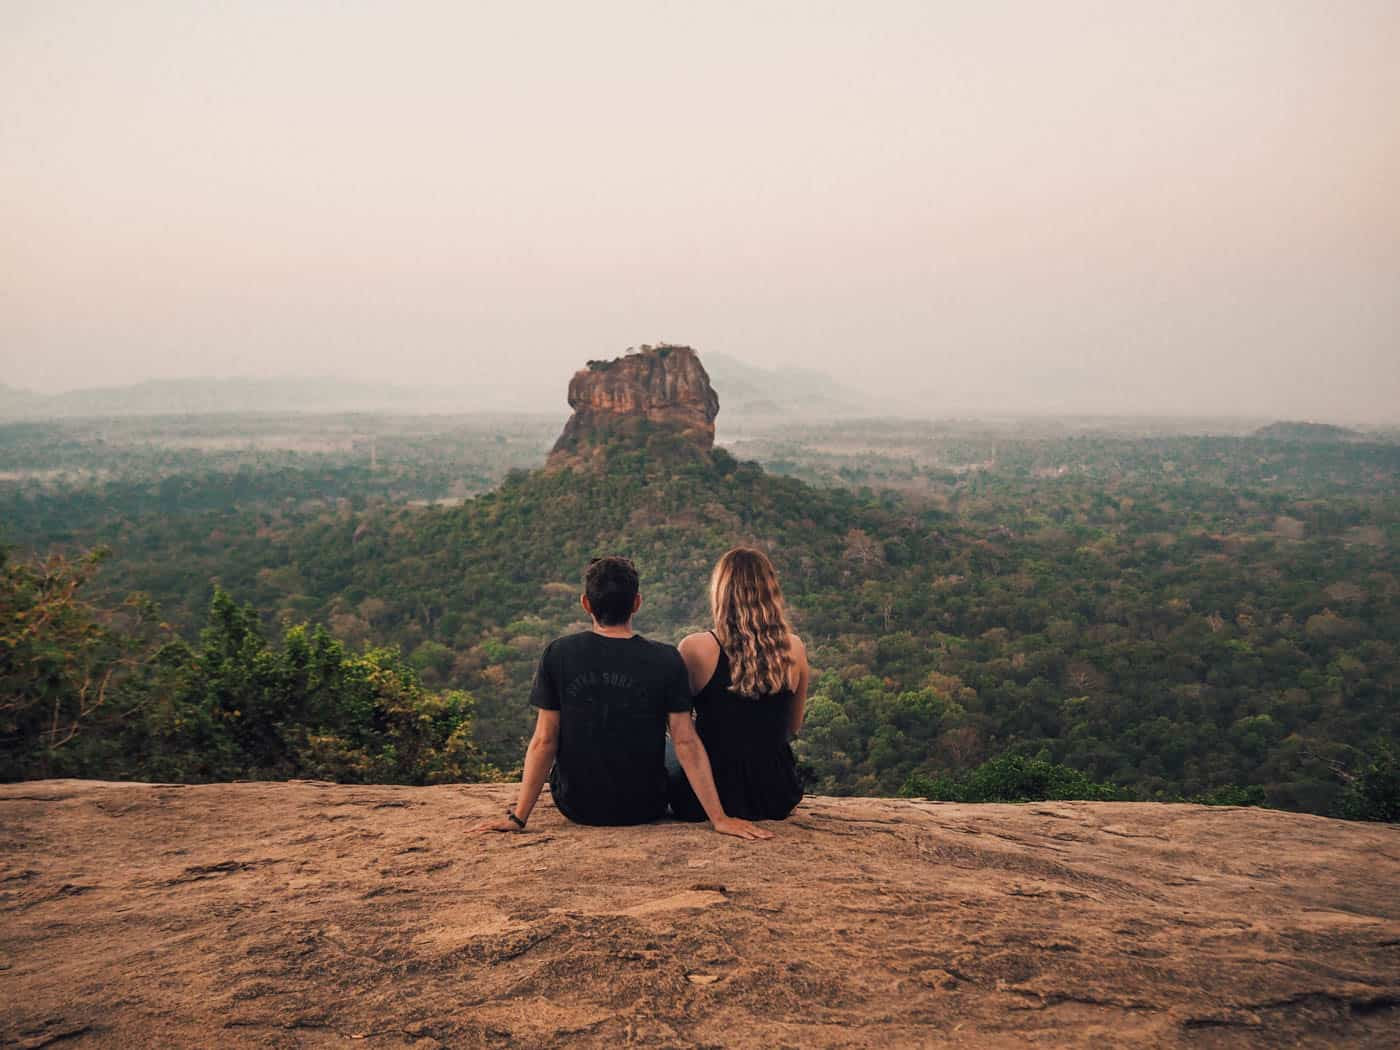 Couple sitting in foreground, with Sigiriya Rock in distance